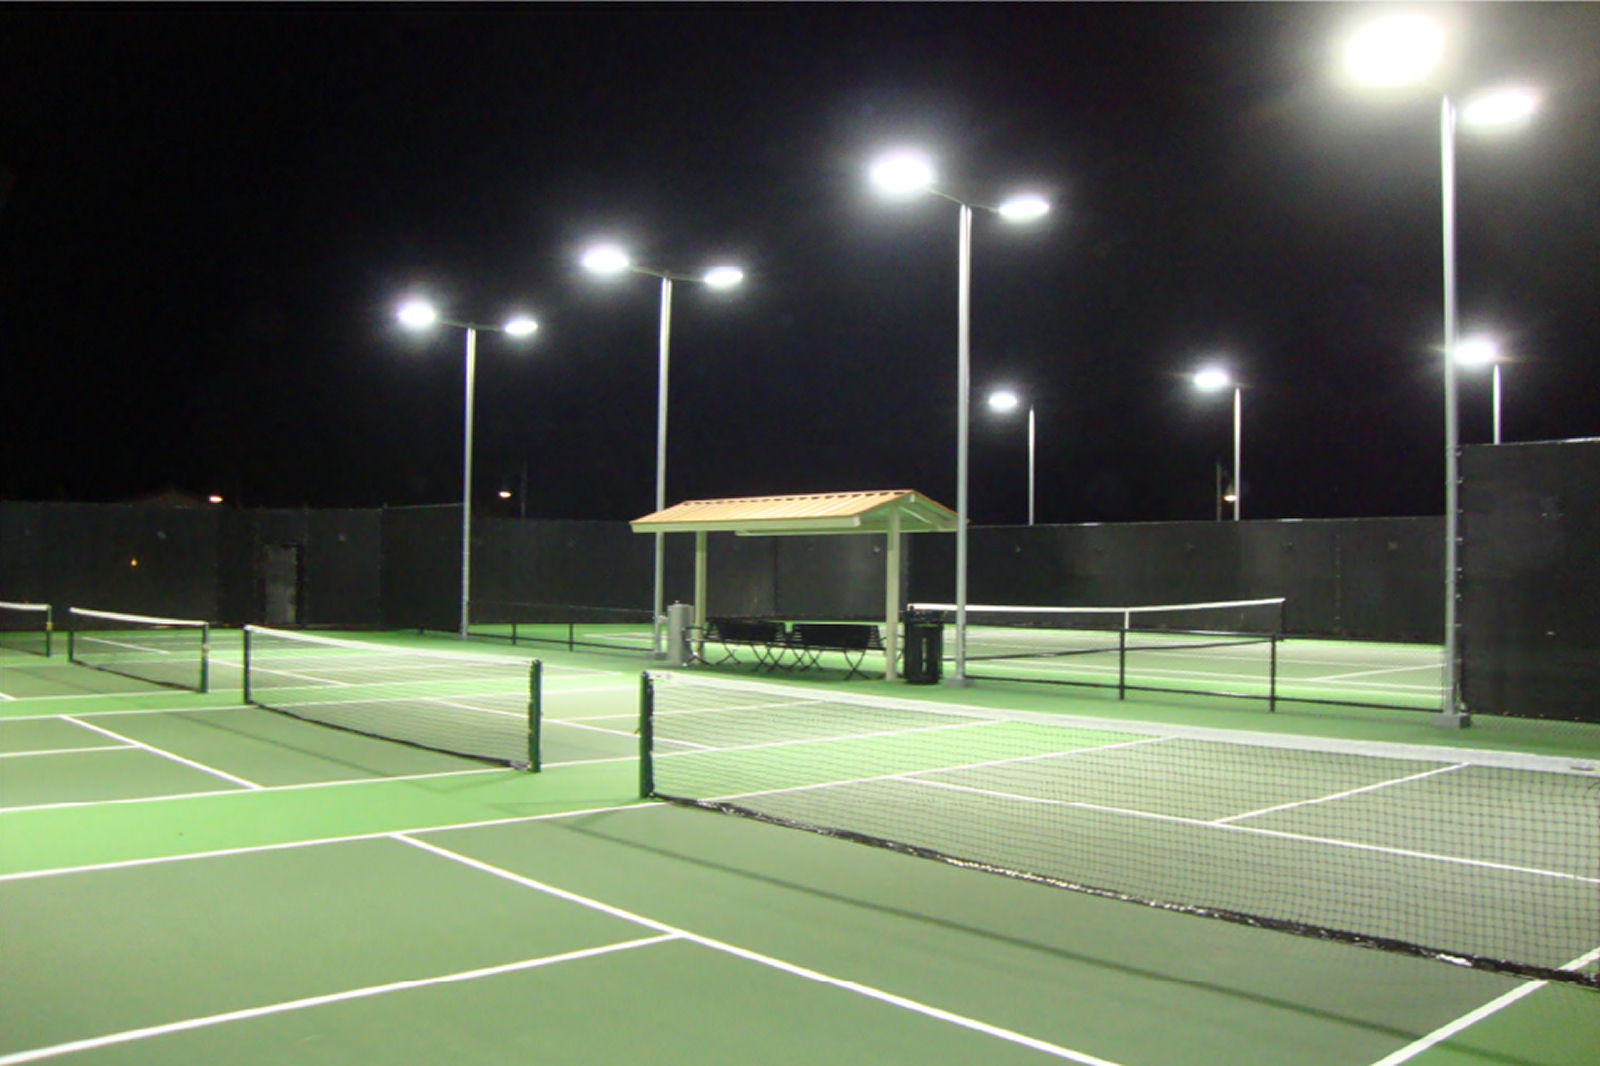 outdoor tennis court-5